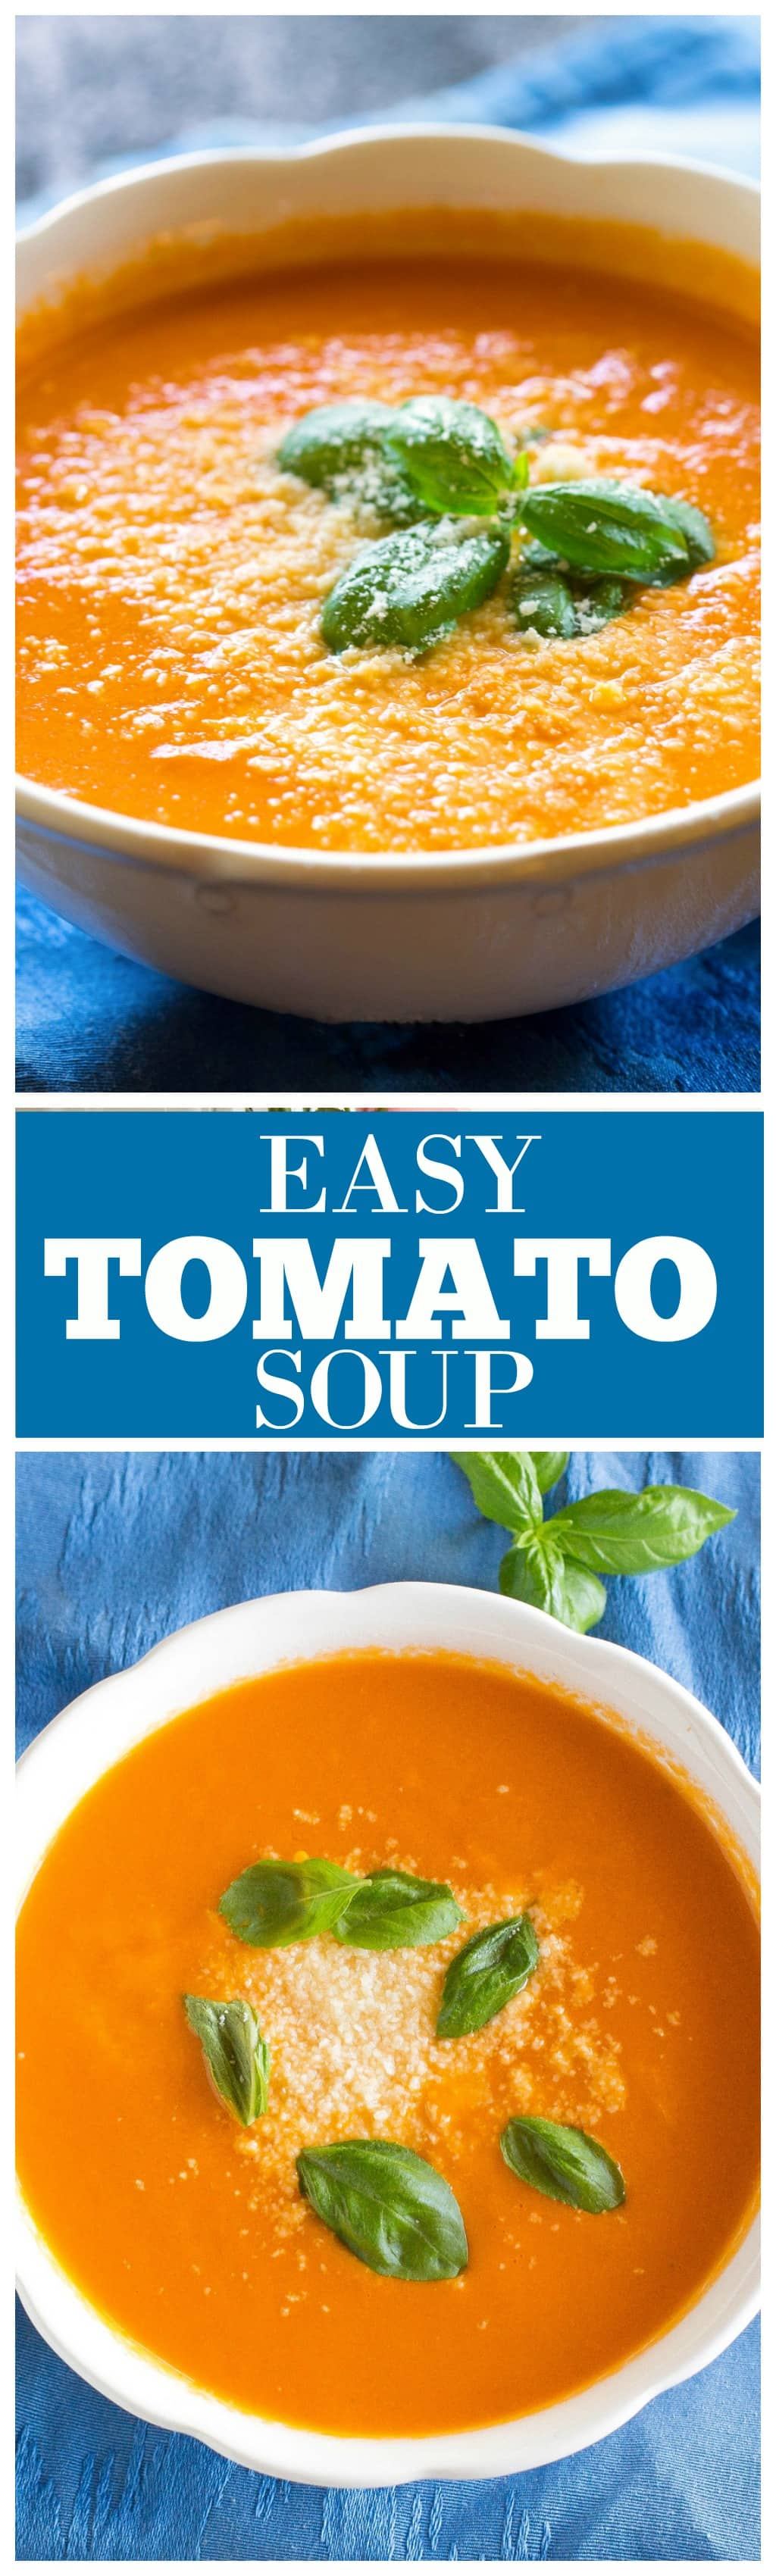 Easy Tomato Soup - only a couple of simple ingredients and tastes so ...